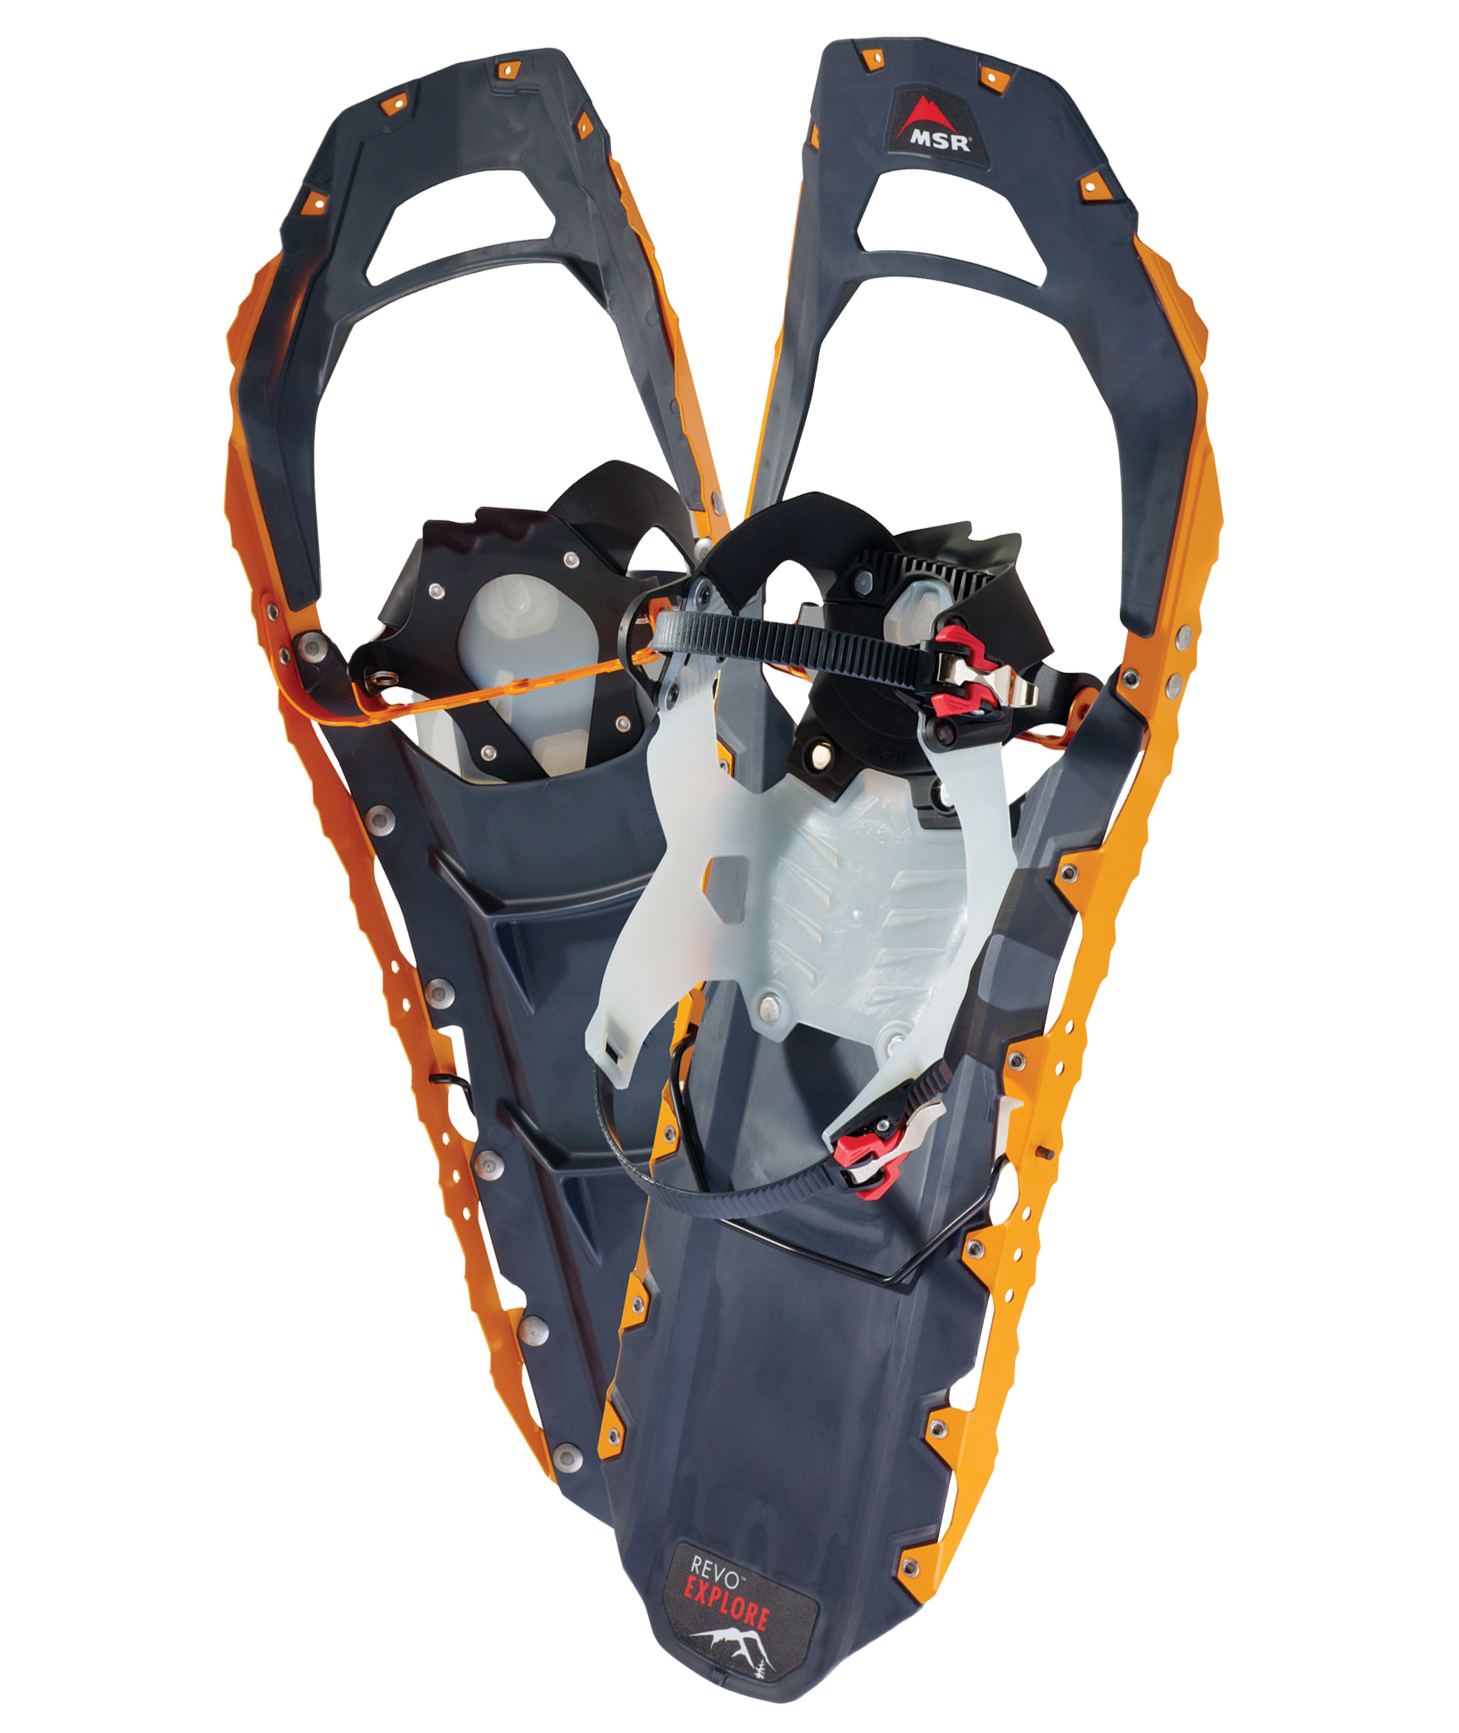 MSR Revo Snowshoe + HyperLink Binding